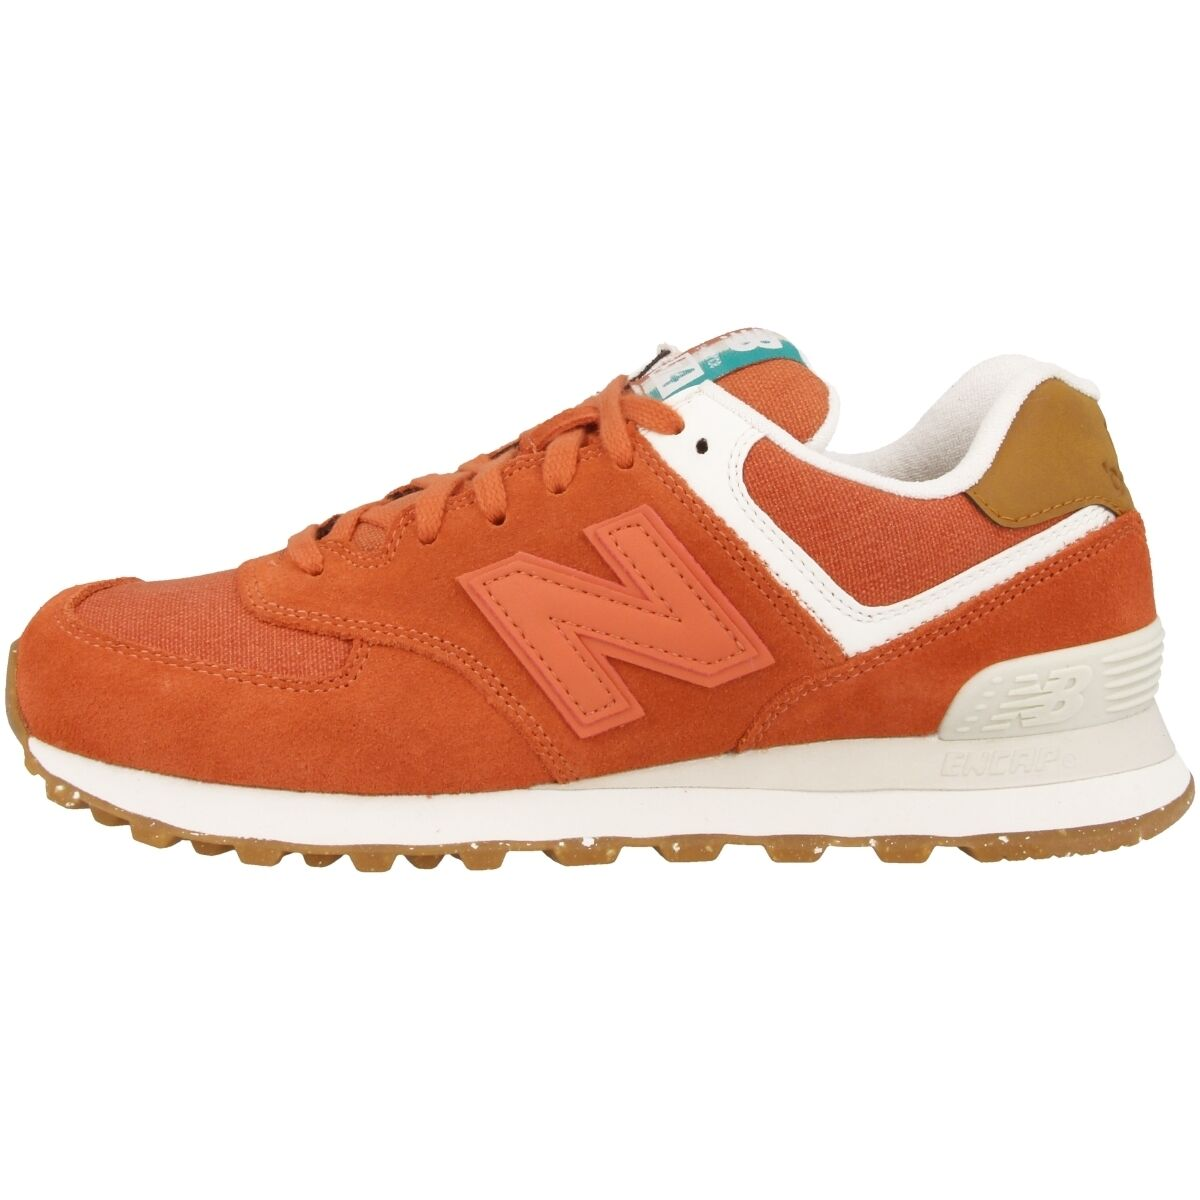 New Balance WL 574 SEA Women Schuhe pink clay powder Sneaker WL574SEA rosa weiß